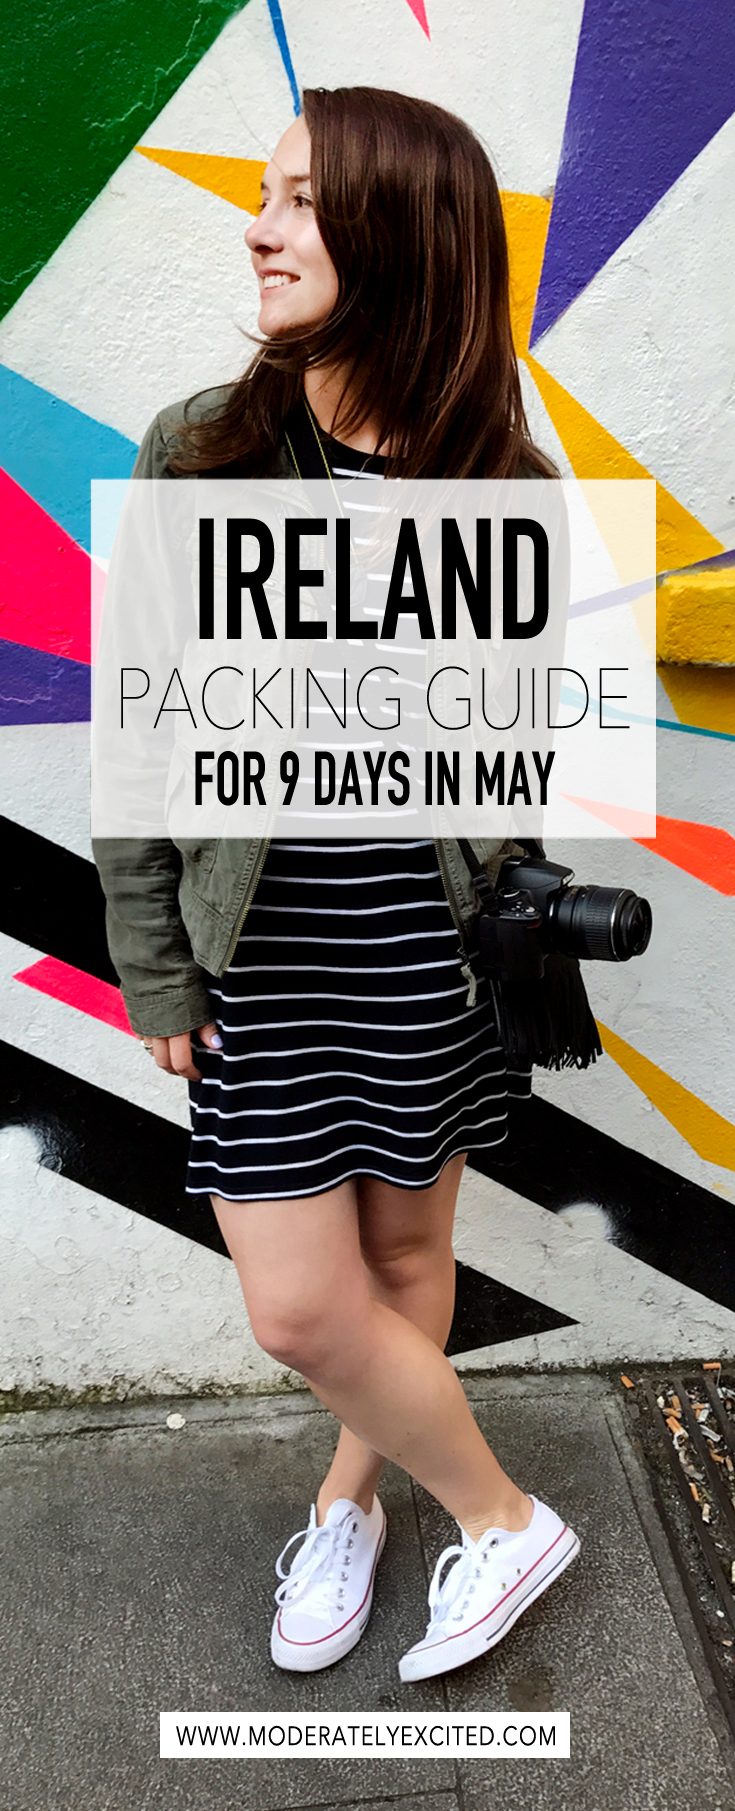 How to pack for Ireland for 9 days in May